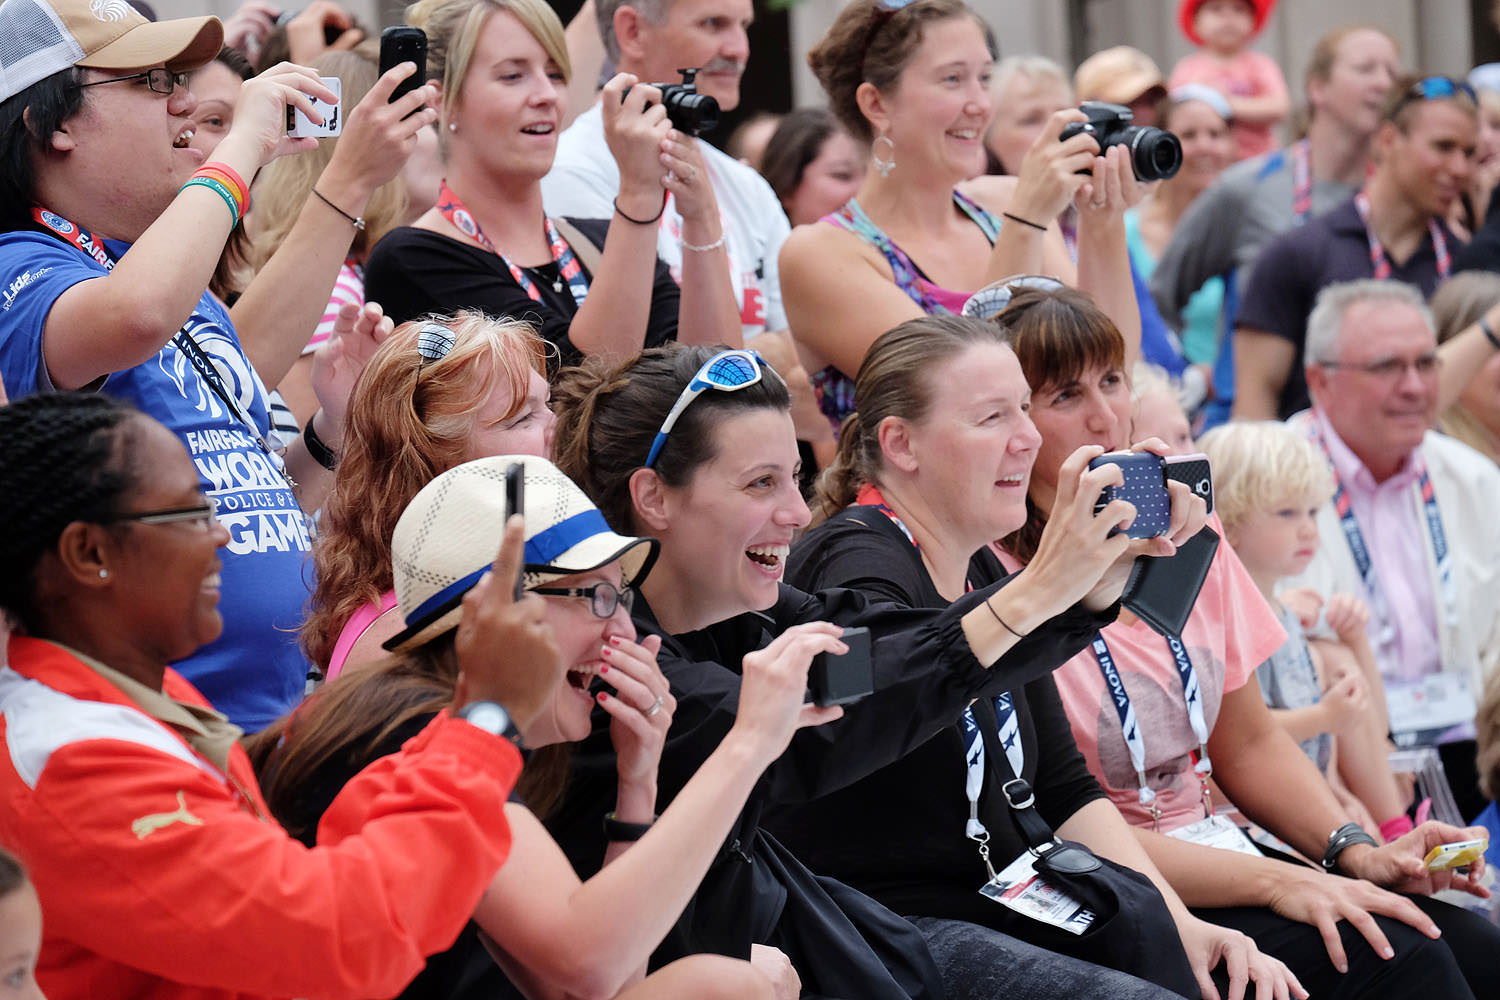 Donut eating contest spectators at the World Police and Fire Games Athlete's Village